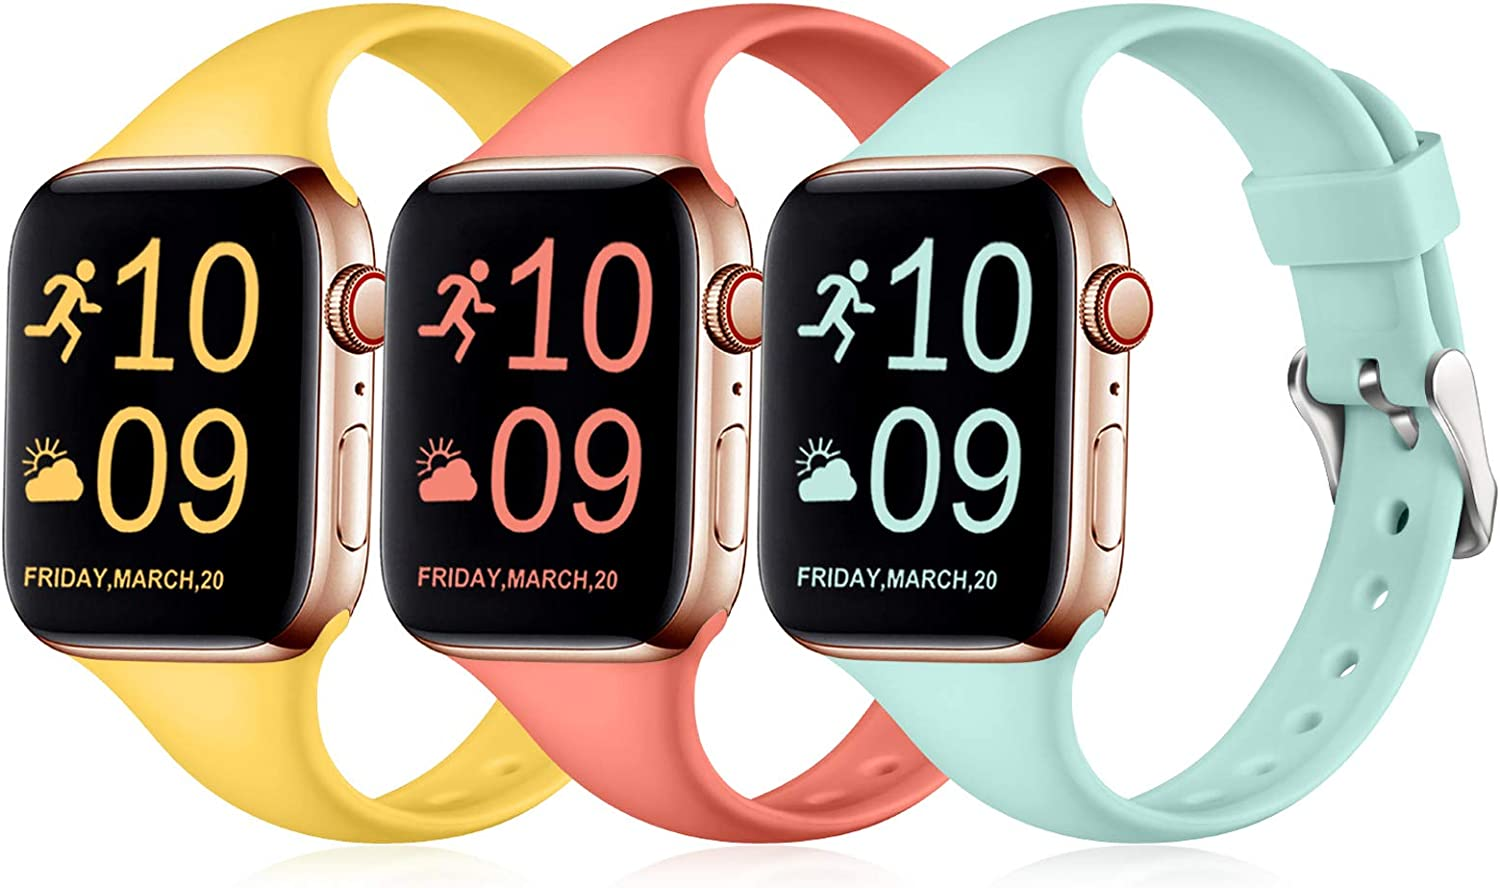 Henva Band Compatible with iWatch 40mm 38mm, Waterproof Soft Slim Band Compatible for Apple Watch SE Series 6/5/4/3/2/1, 3 Pack, Tiffany Blue/Mango Yellow/Coral, S/M